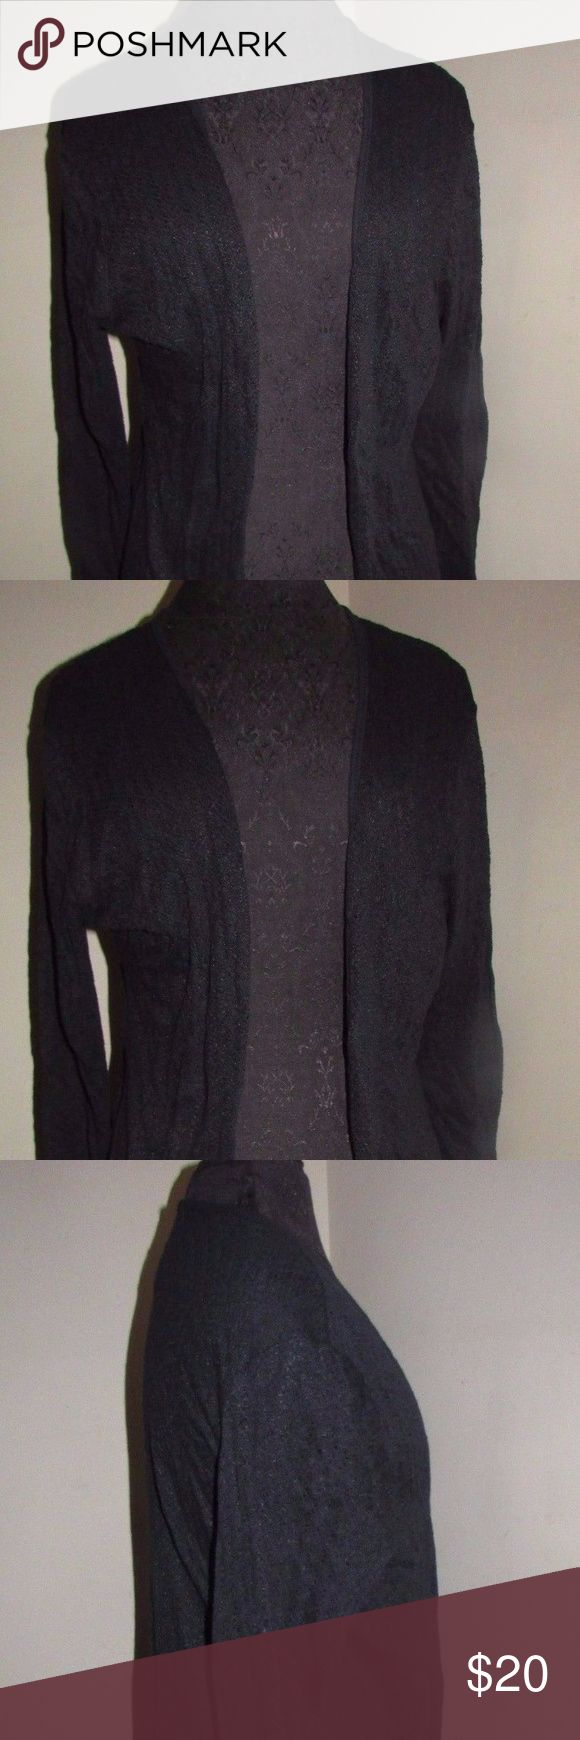 "new Serena Williams black  open front sweater med Is a black Serena Williams open front cardigan sweater. Has long sleeves, is light weight, is soft to the touch,  has great stretch, and is a thinner knit style.  Is 85% cotton 15% poly, perfect for cooler weather! Retail cost was $45.  Is a size medium, measures 21"" from arm pit to arm pit, 37 from the shoulder down in the front, and 21"" from the shoulder seam to the cuff.  Measurements are un-stretched, tag suggest hand wash cold/inside…"